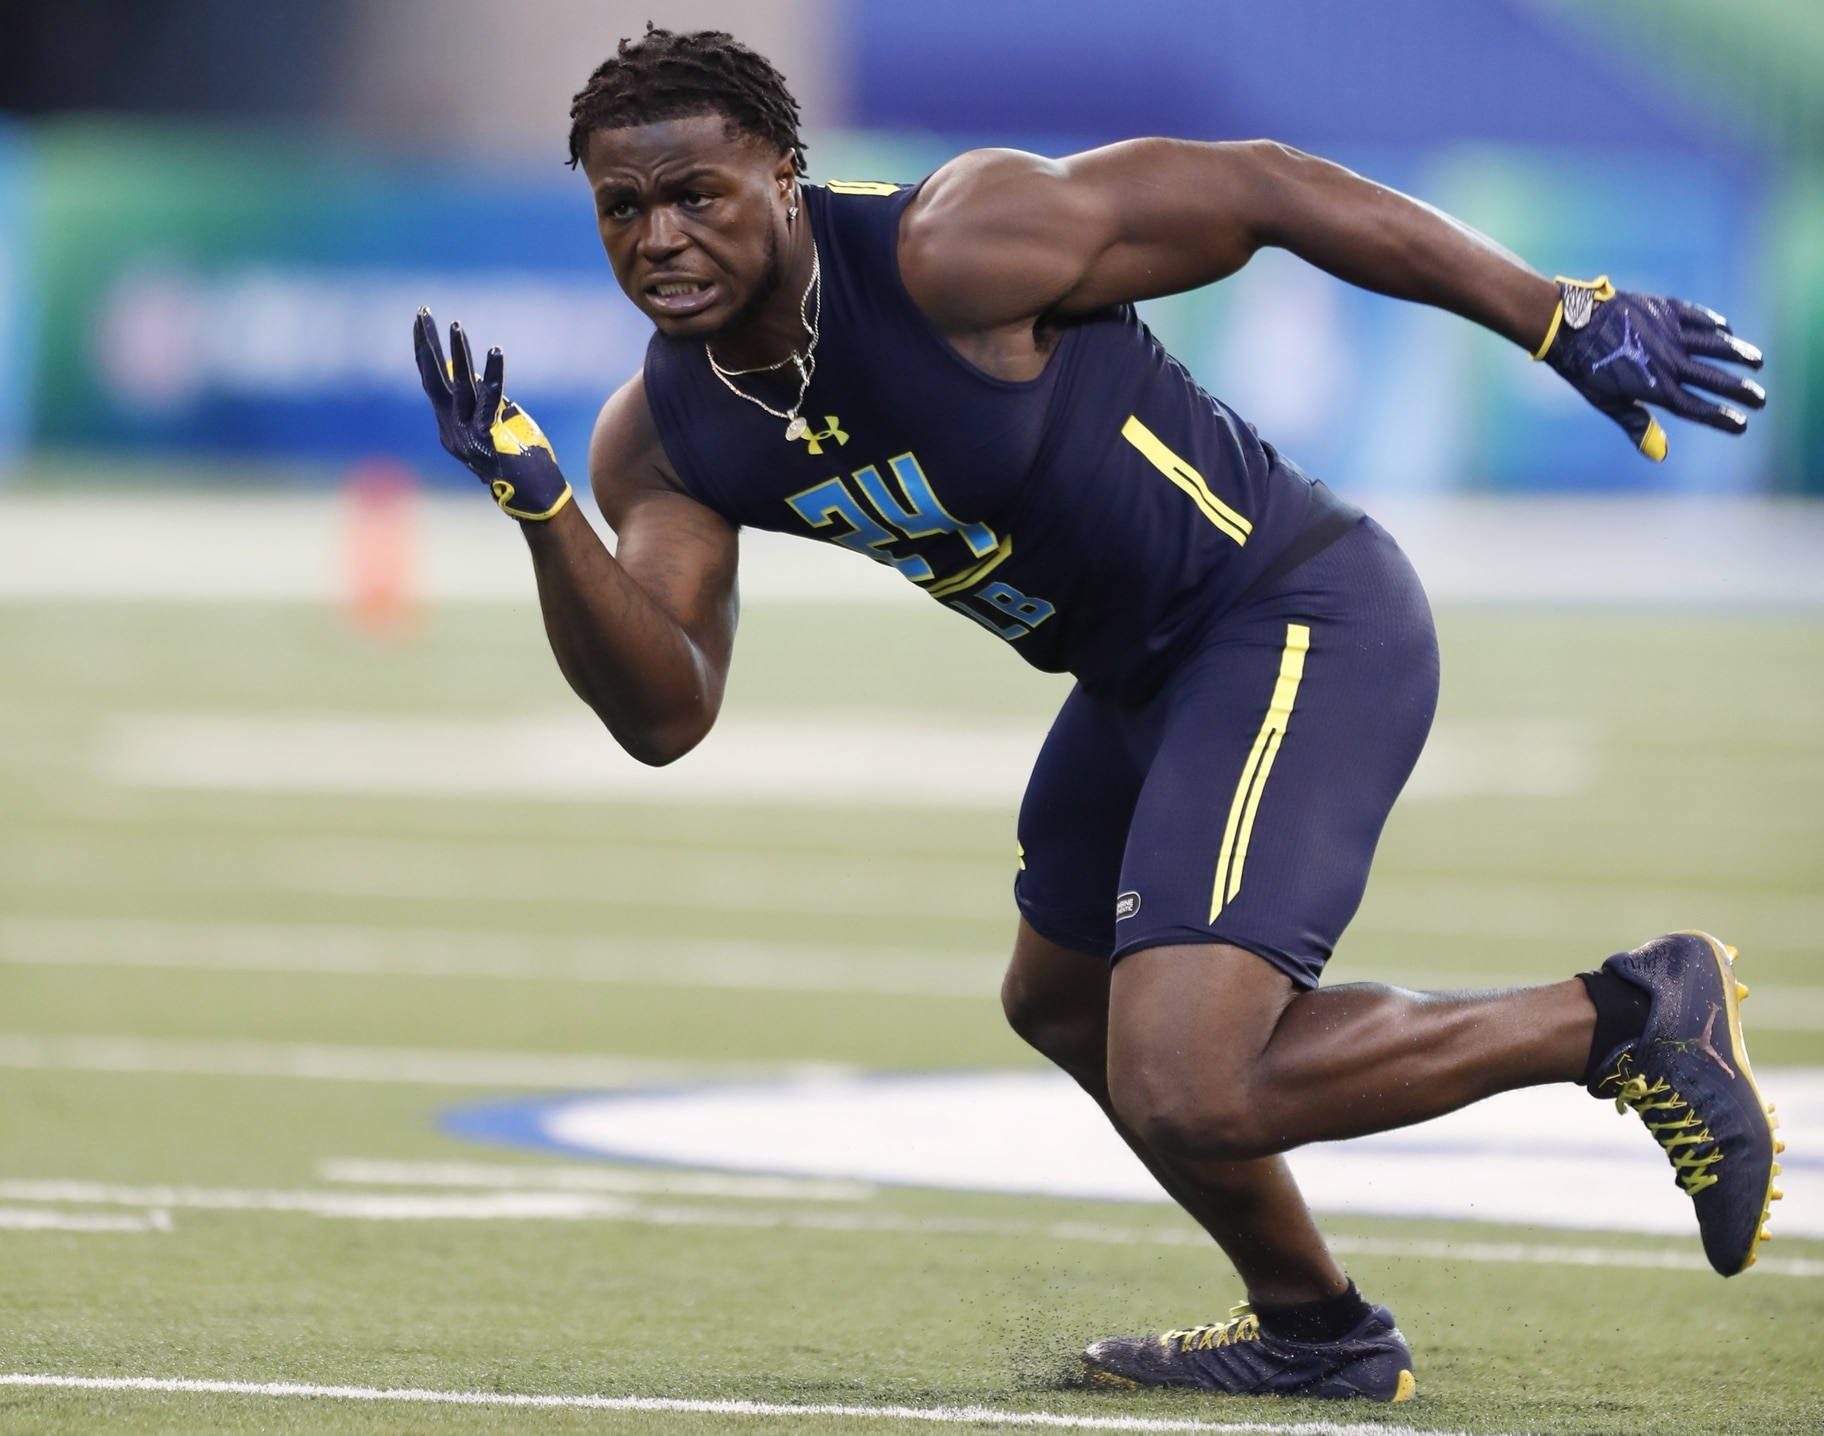 NFL Scouting Combine, Jabrill Peppers